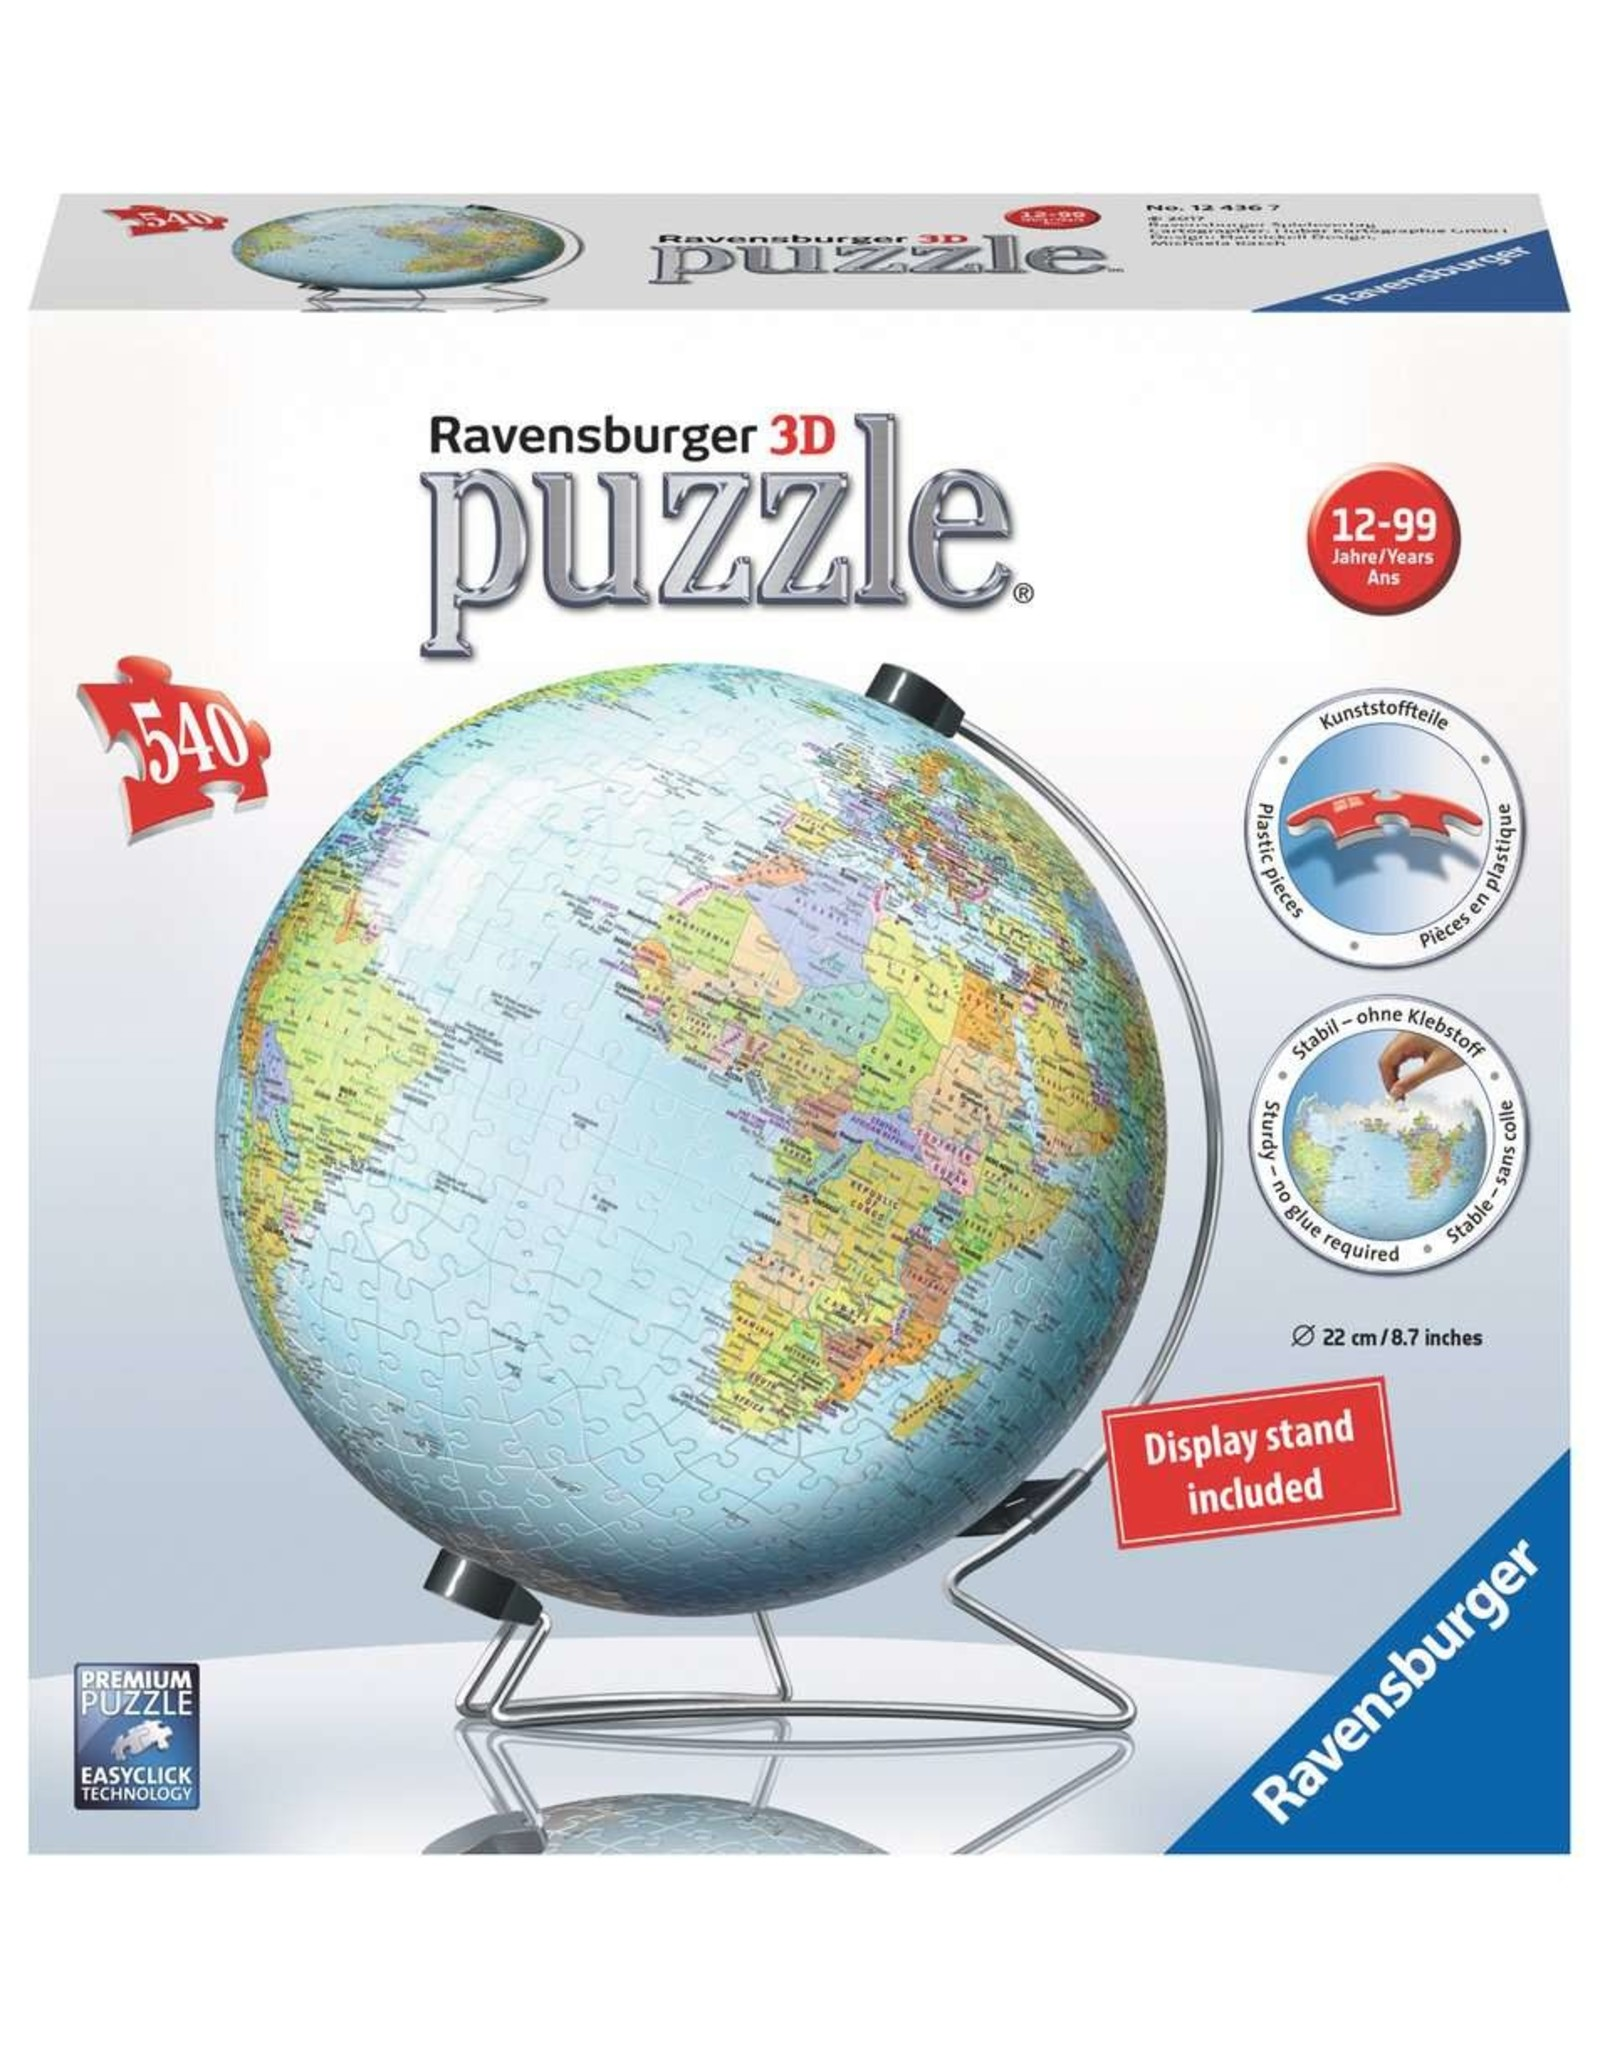 Ravensburger Puzzle Ball 540 pc The Earth